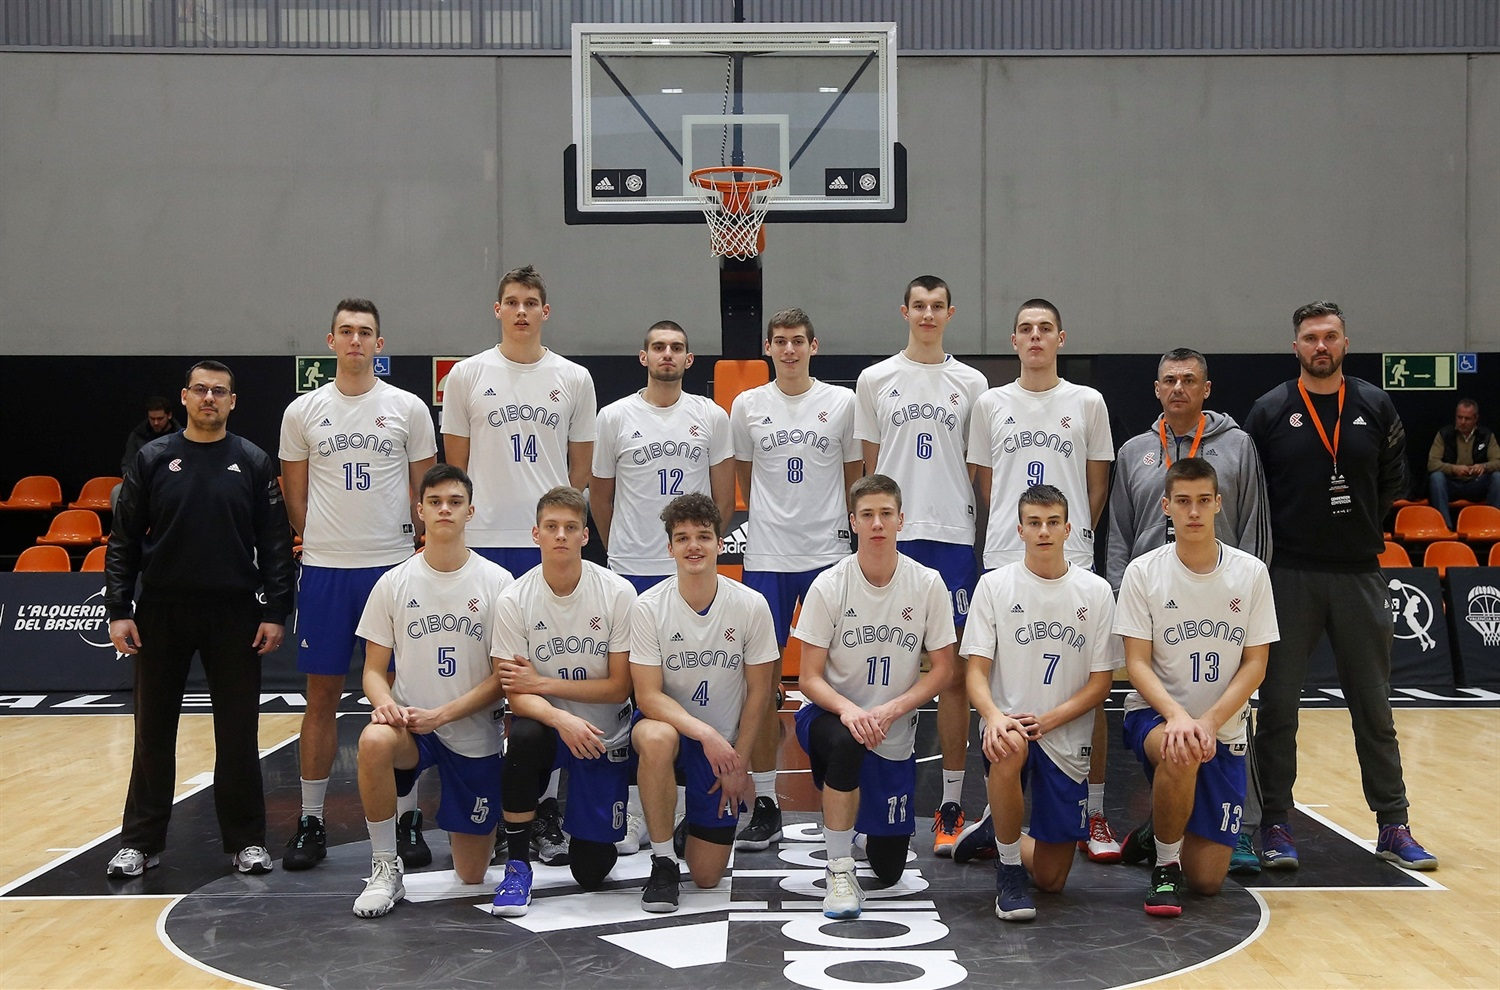 U18 Cibona Zagreb - ANGT Valencia 2019-20 (photo Miguel Angel Polo) - JT19